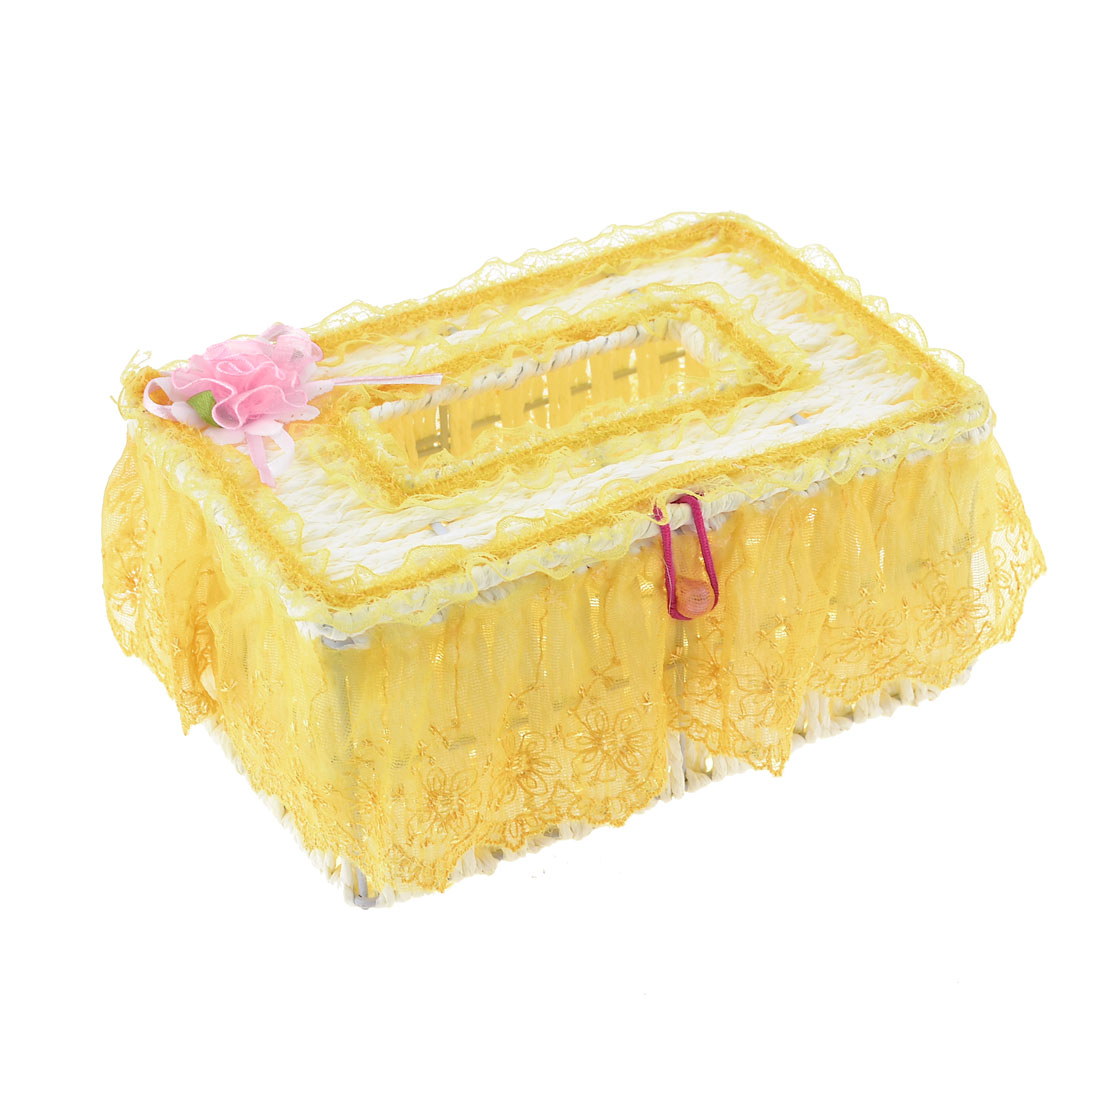 Gold Tone Lace Decor White Rectangle Woven Pattern Tissue Storage Case